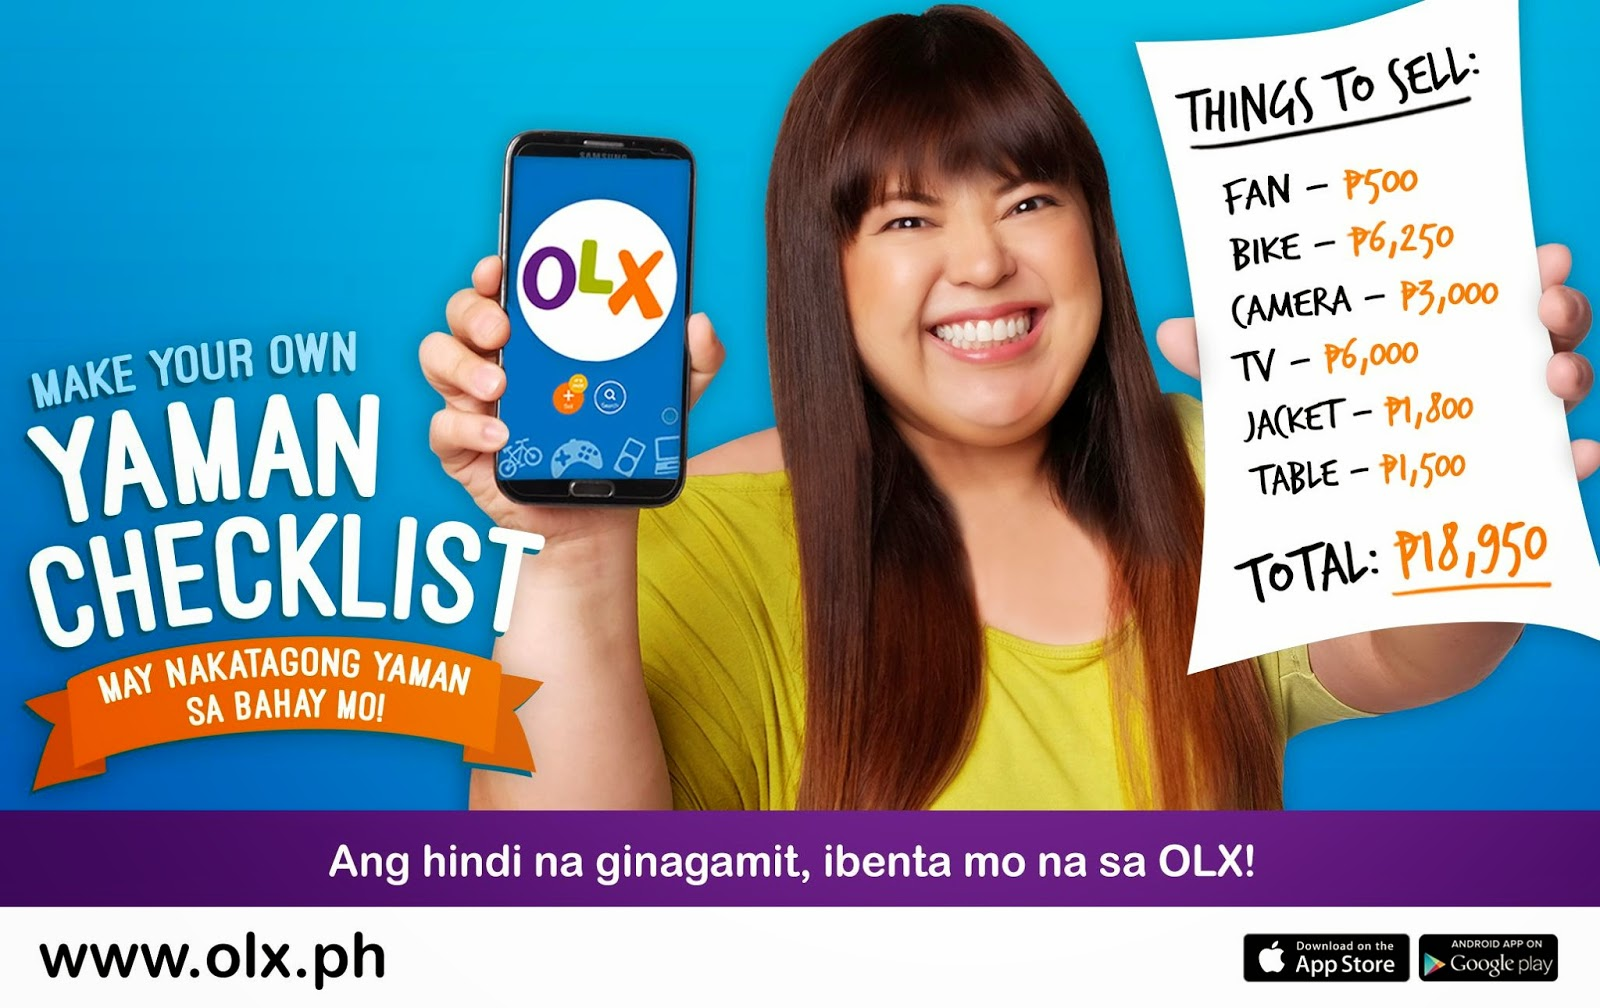 Manila Life: OLX Philippines Draws More Filipinos to Buy and